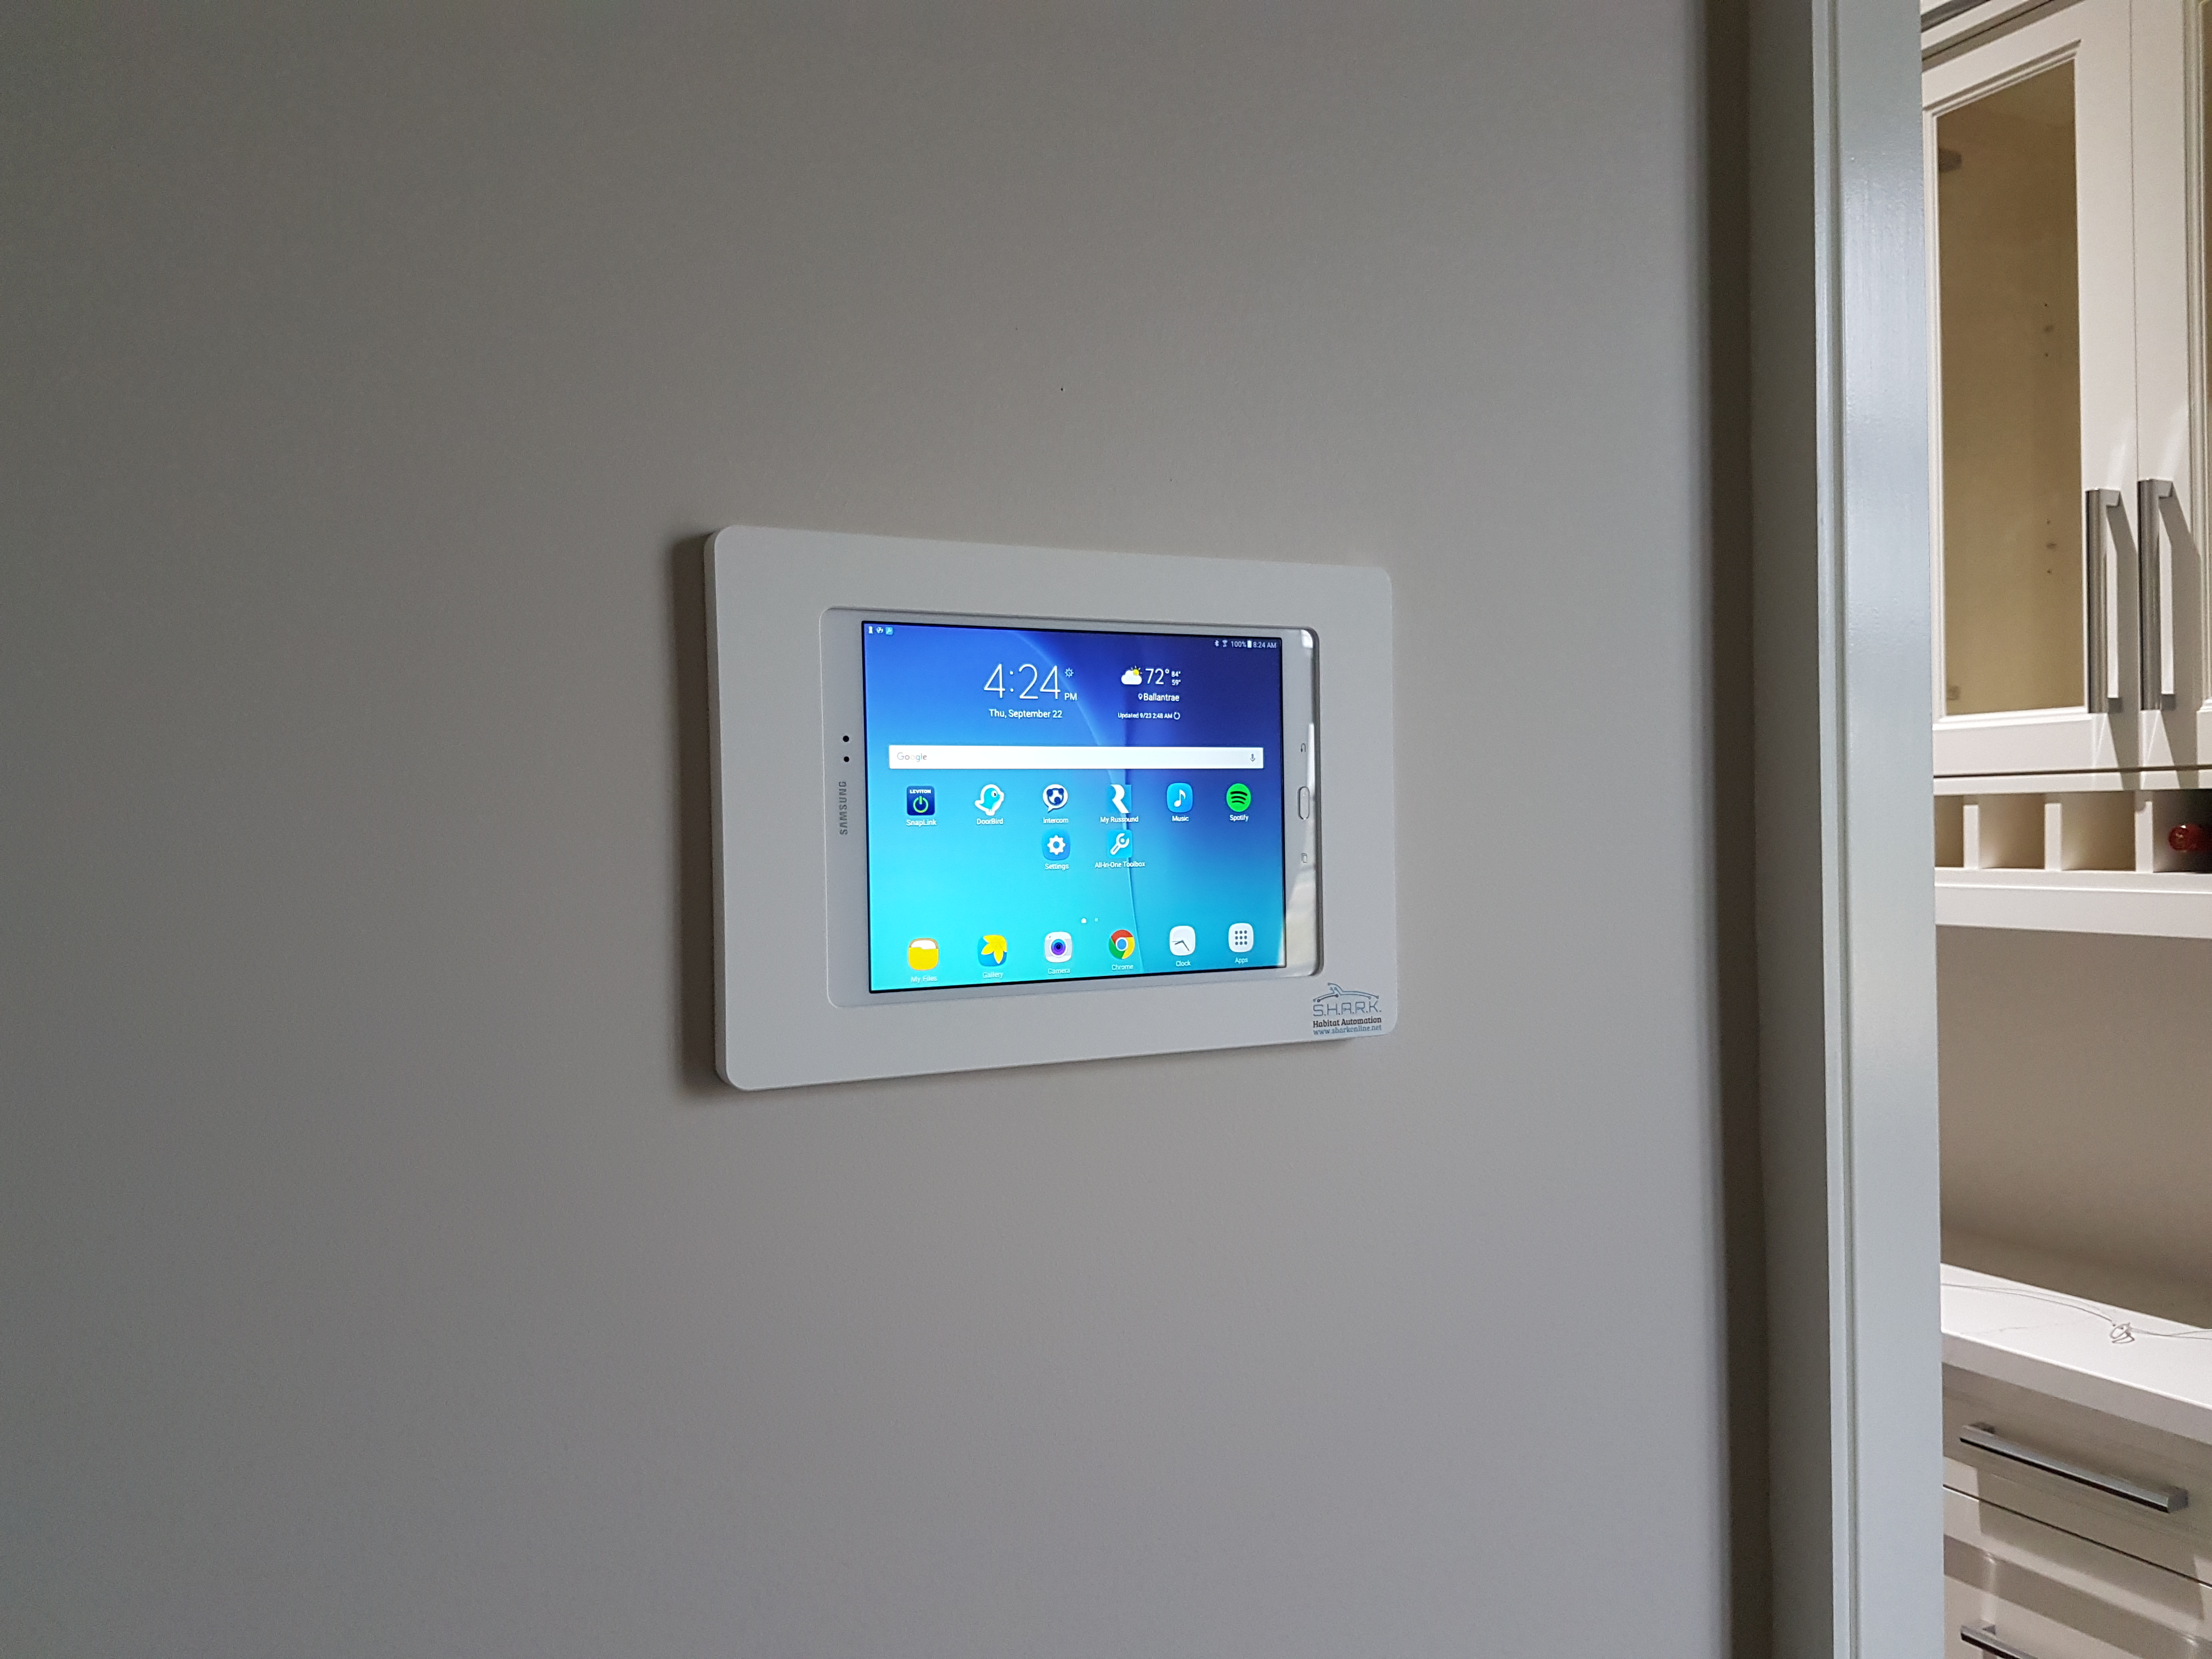 Entertainment And Media S H A R K Smart Home Automation